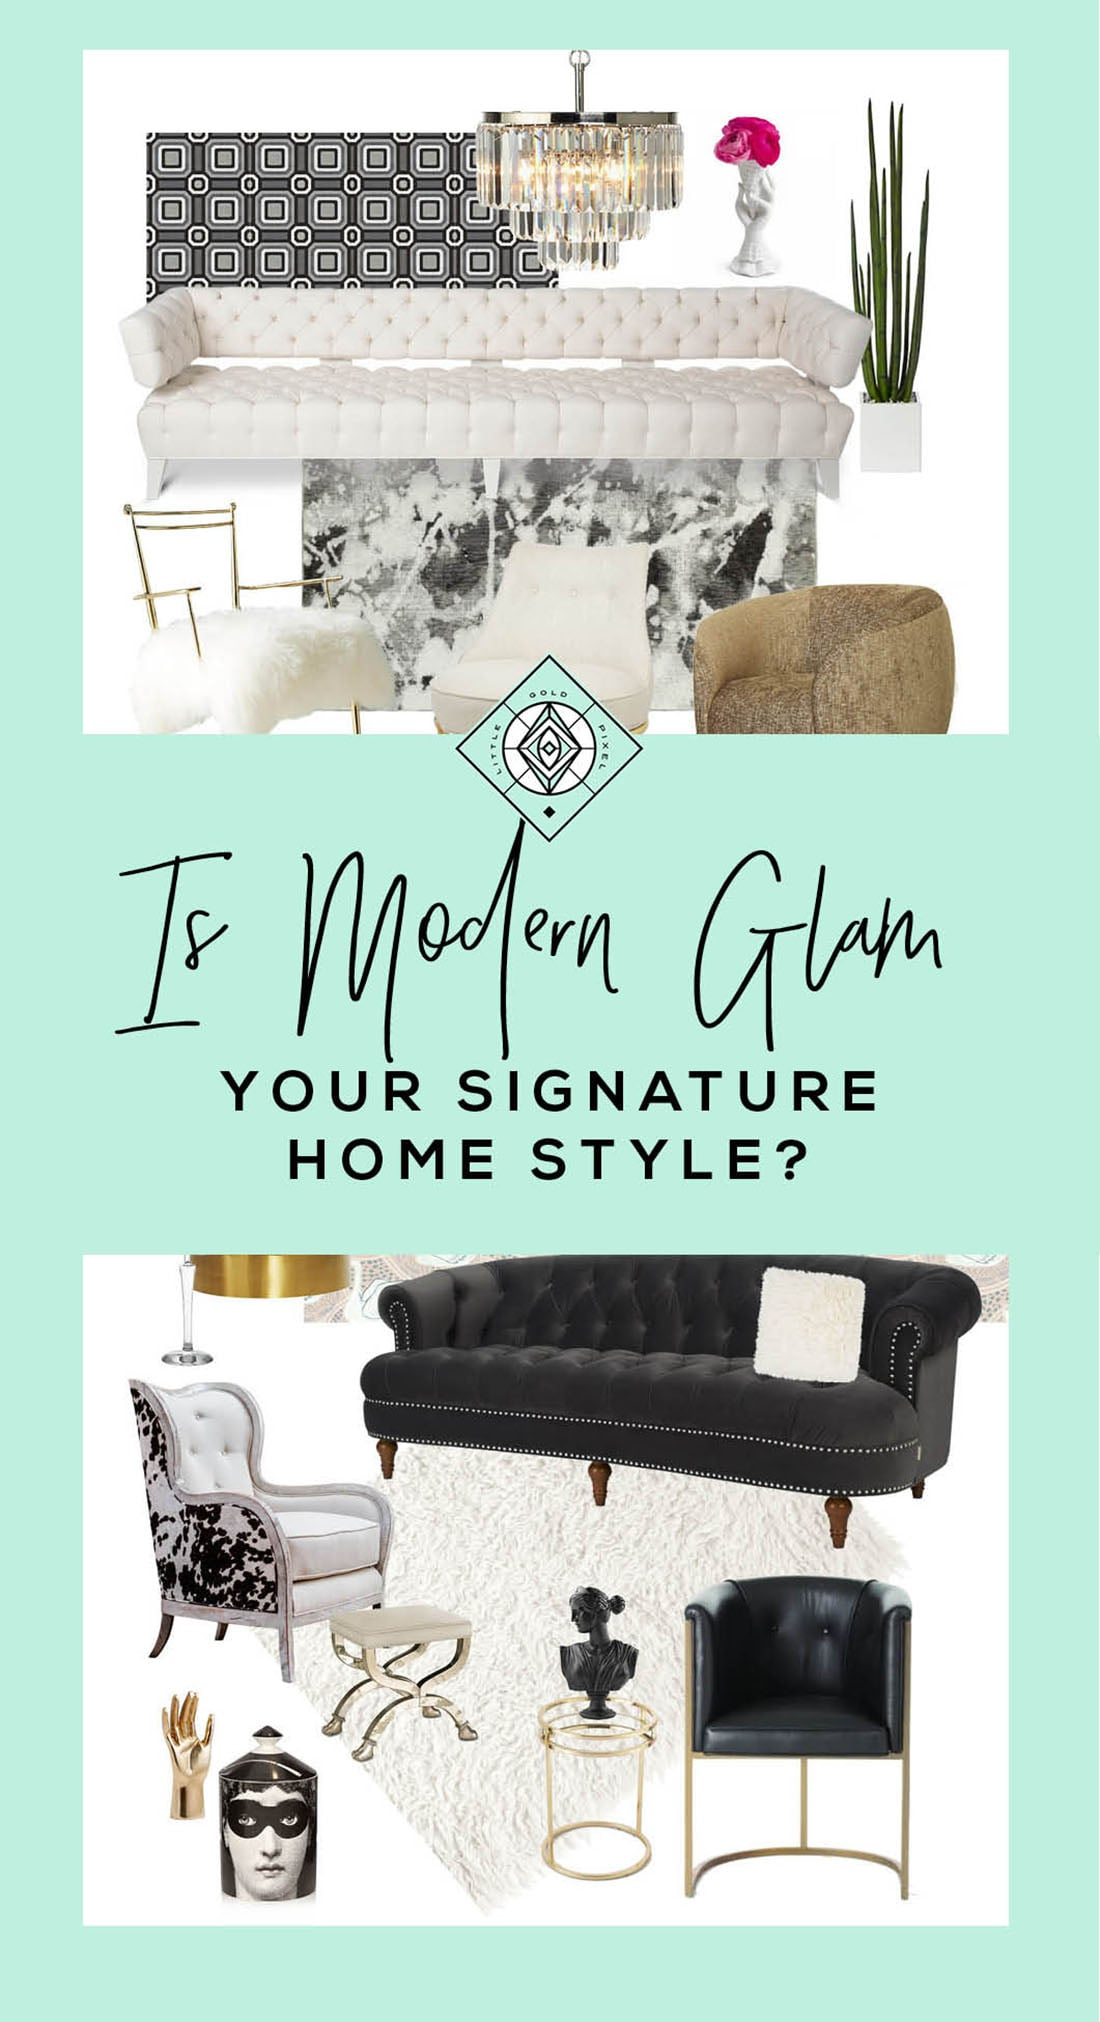 8 Signs Modern Glam Decor is the Right Home Style for You • Little Gold Pixel • Click through to find out if you're compatible with Modern Glam decor!